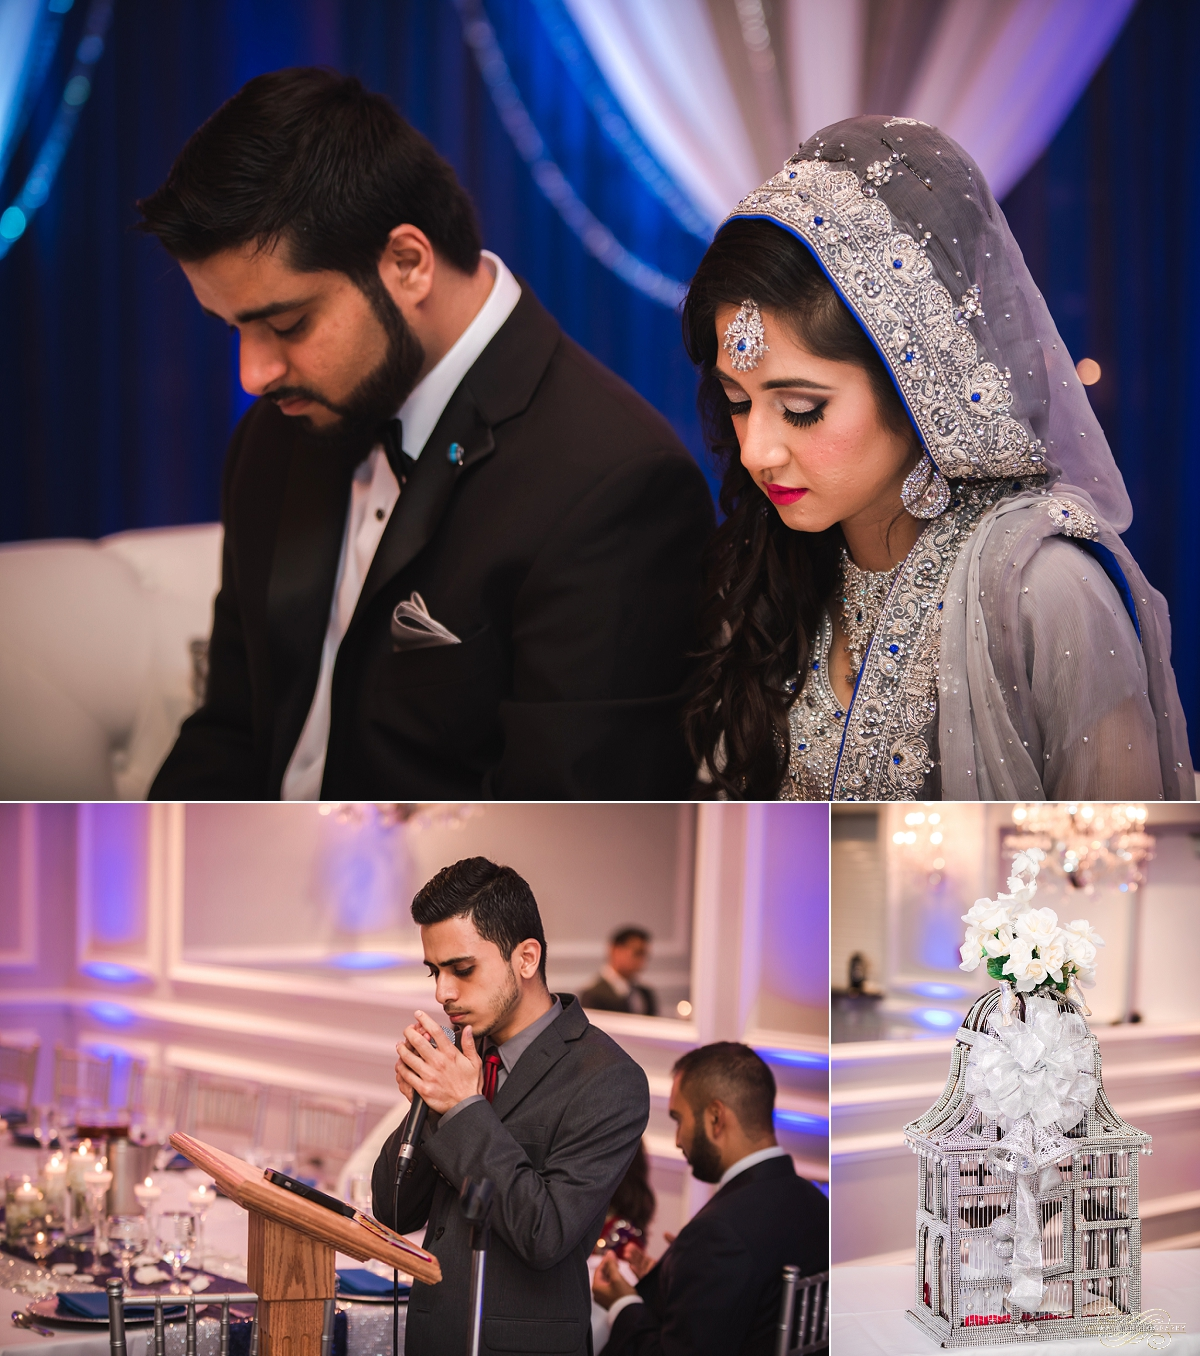 Umer + Abeer The Empress Banquet Wedding Photography Addison Illinois_0056.jpg